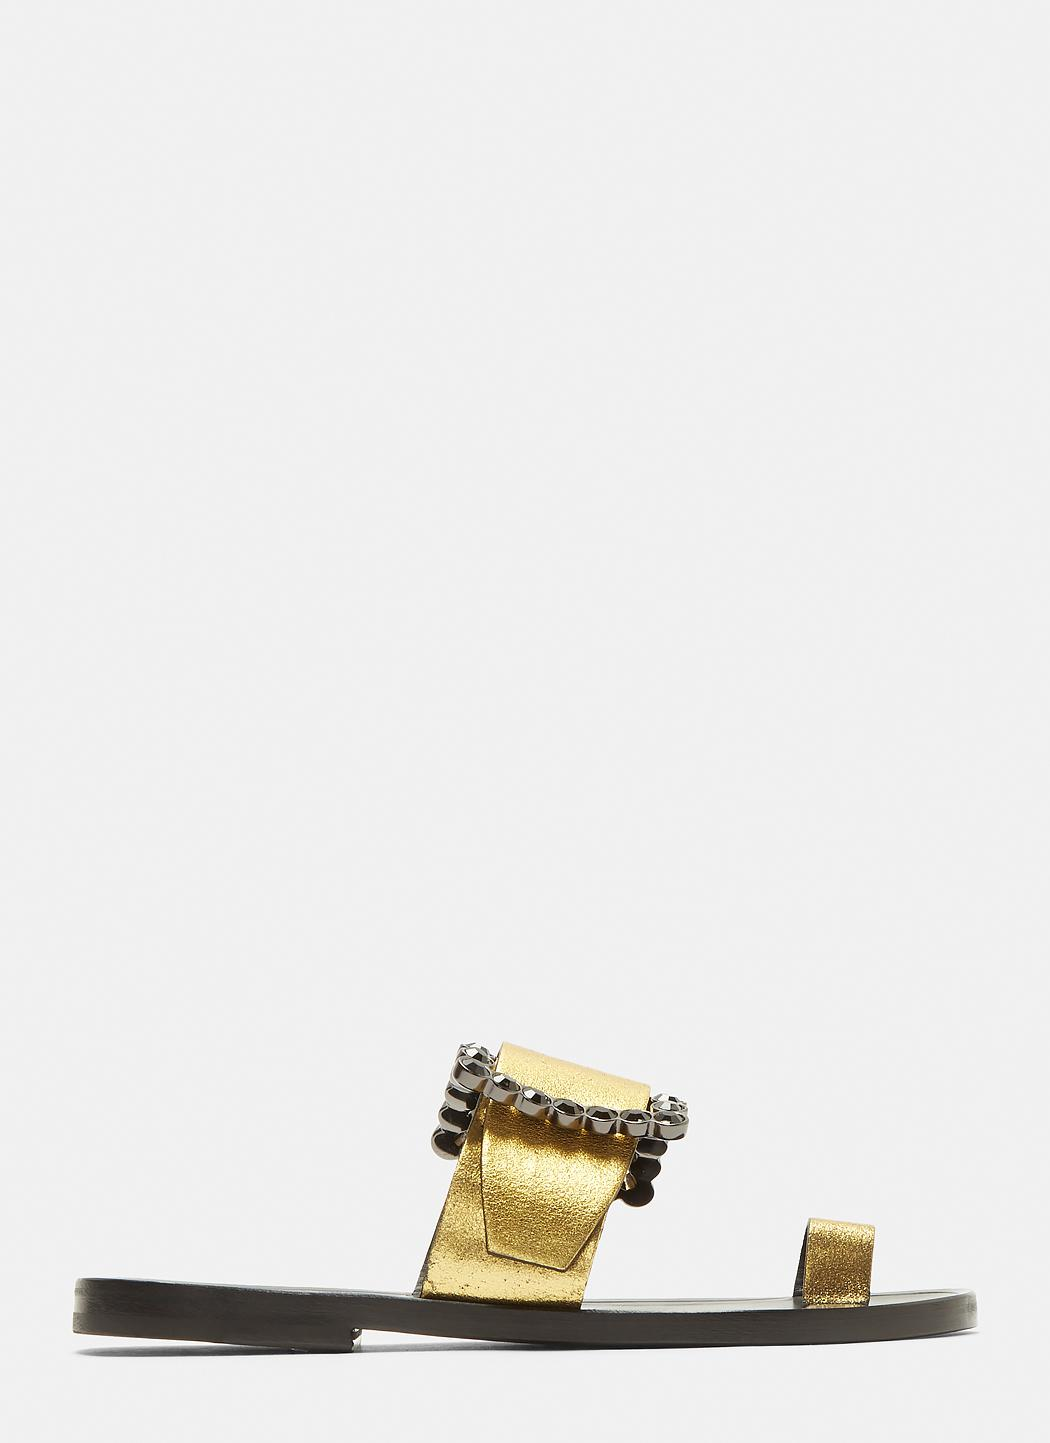 Jewelled Buckle Sandals Maison Martin Margiela zDpgRSng